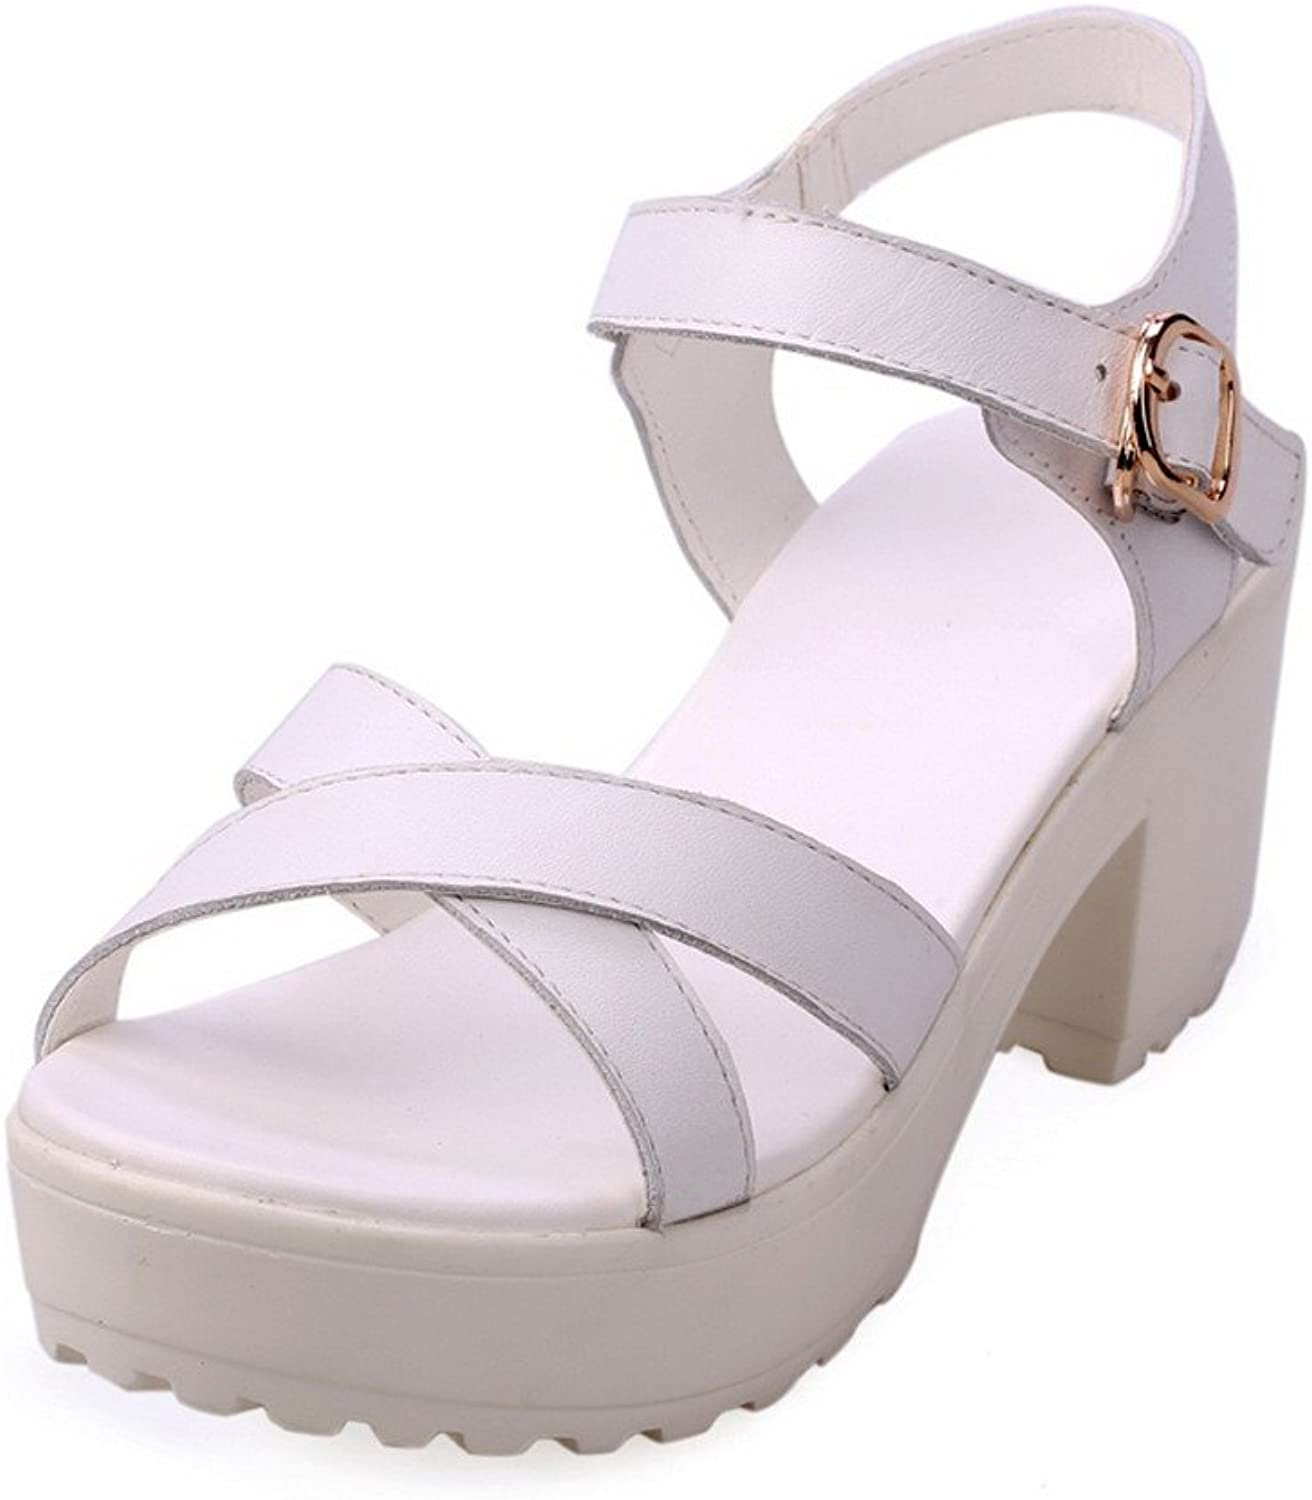 WeenFashion Womens Open Toe Kitten Heel Platform Cow Leather Soft Material Solid Sandals, White, 5 B(M) US